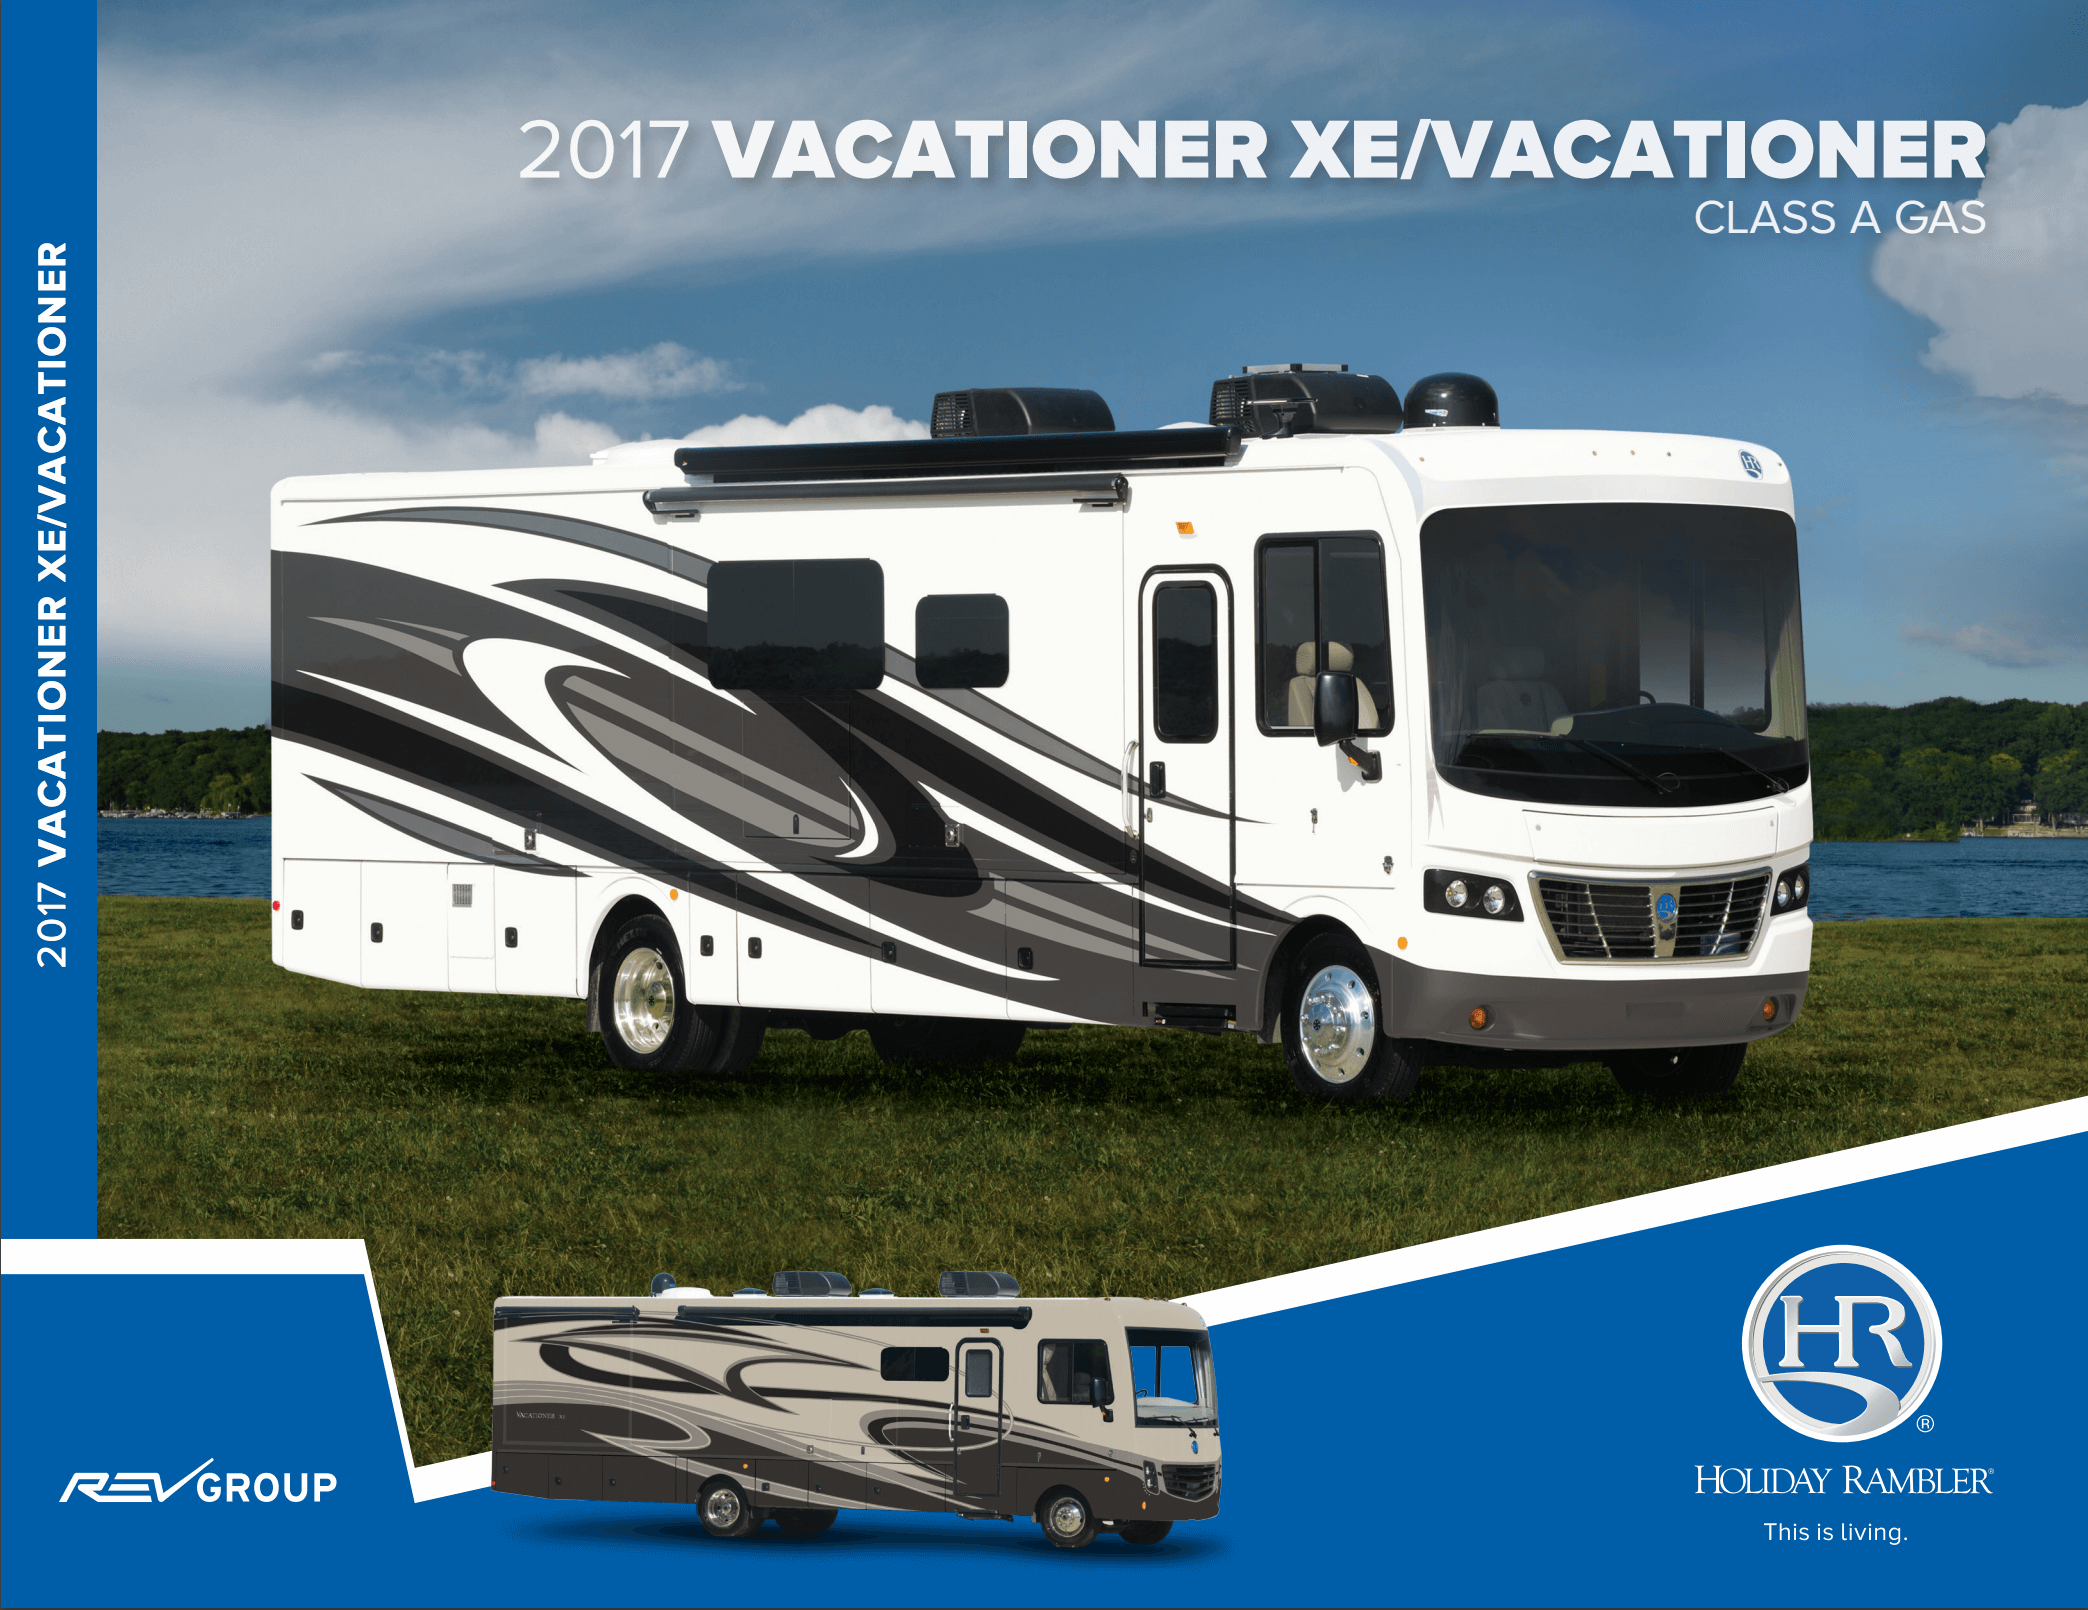 1475165079_brc vacationer rv holiday rambler vacationer class a gas motorhomes  at reclaimingppi.co